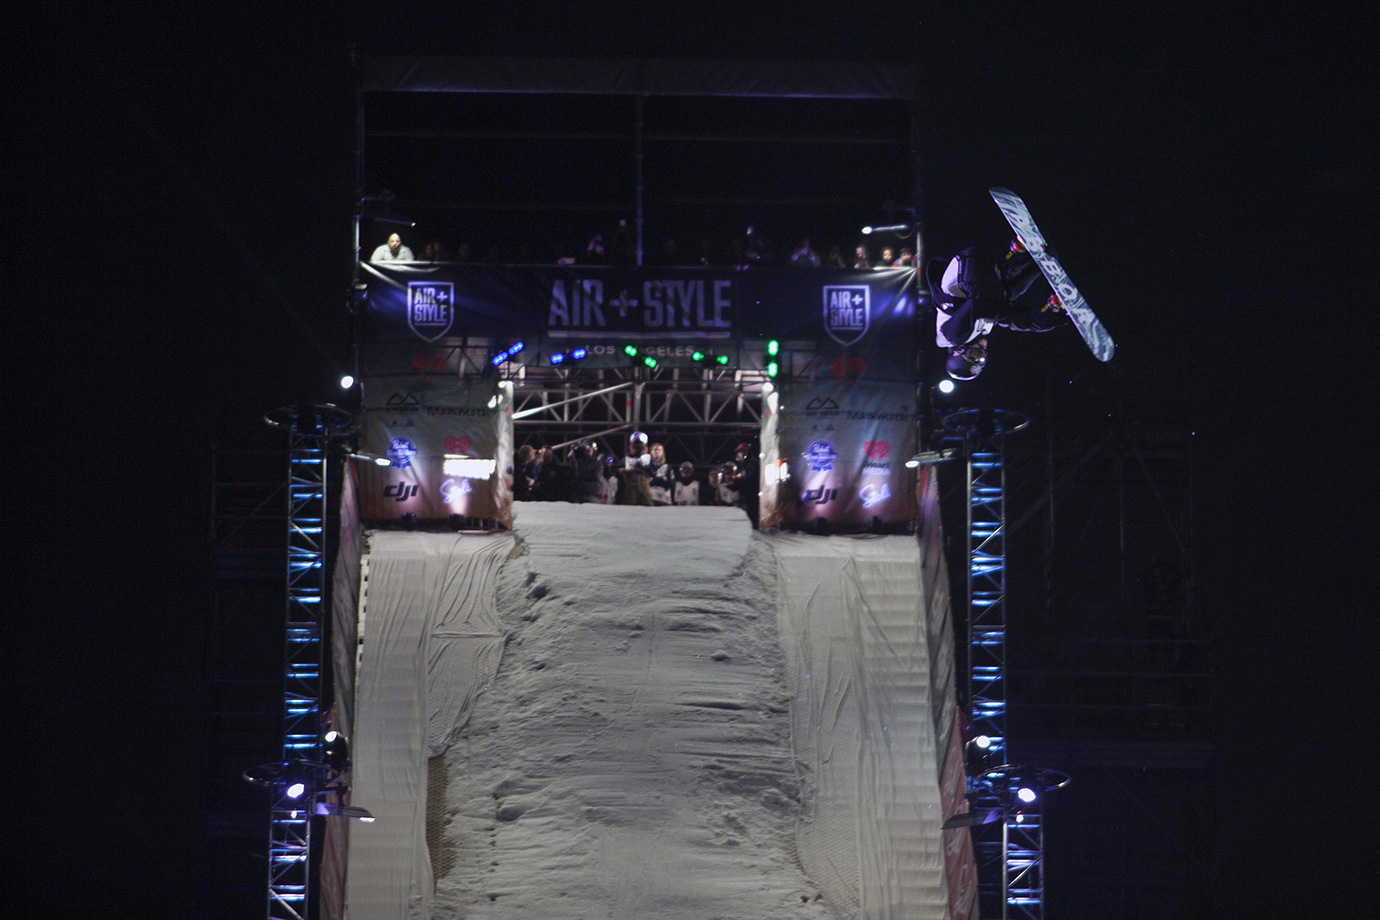 Emil Ulsletten rises into the L.A. night during the final elimination round before the Air+Style Super Final.